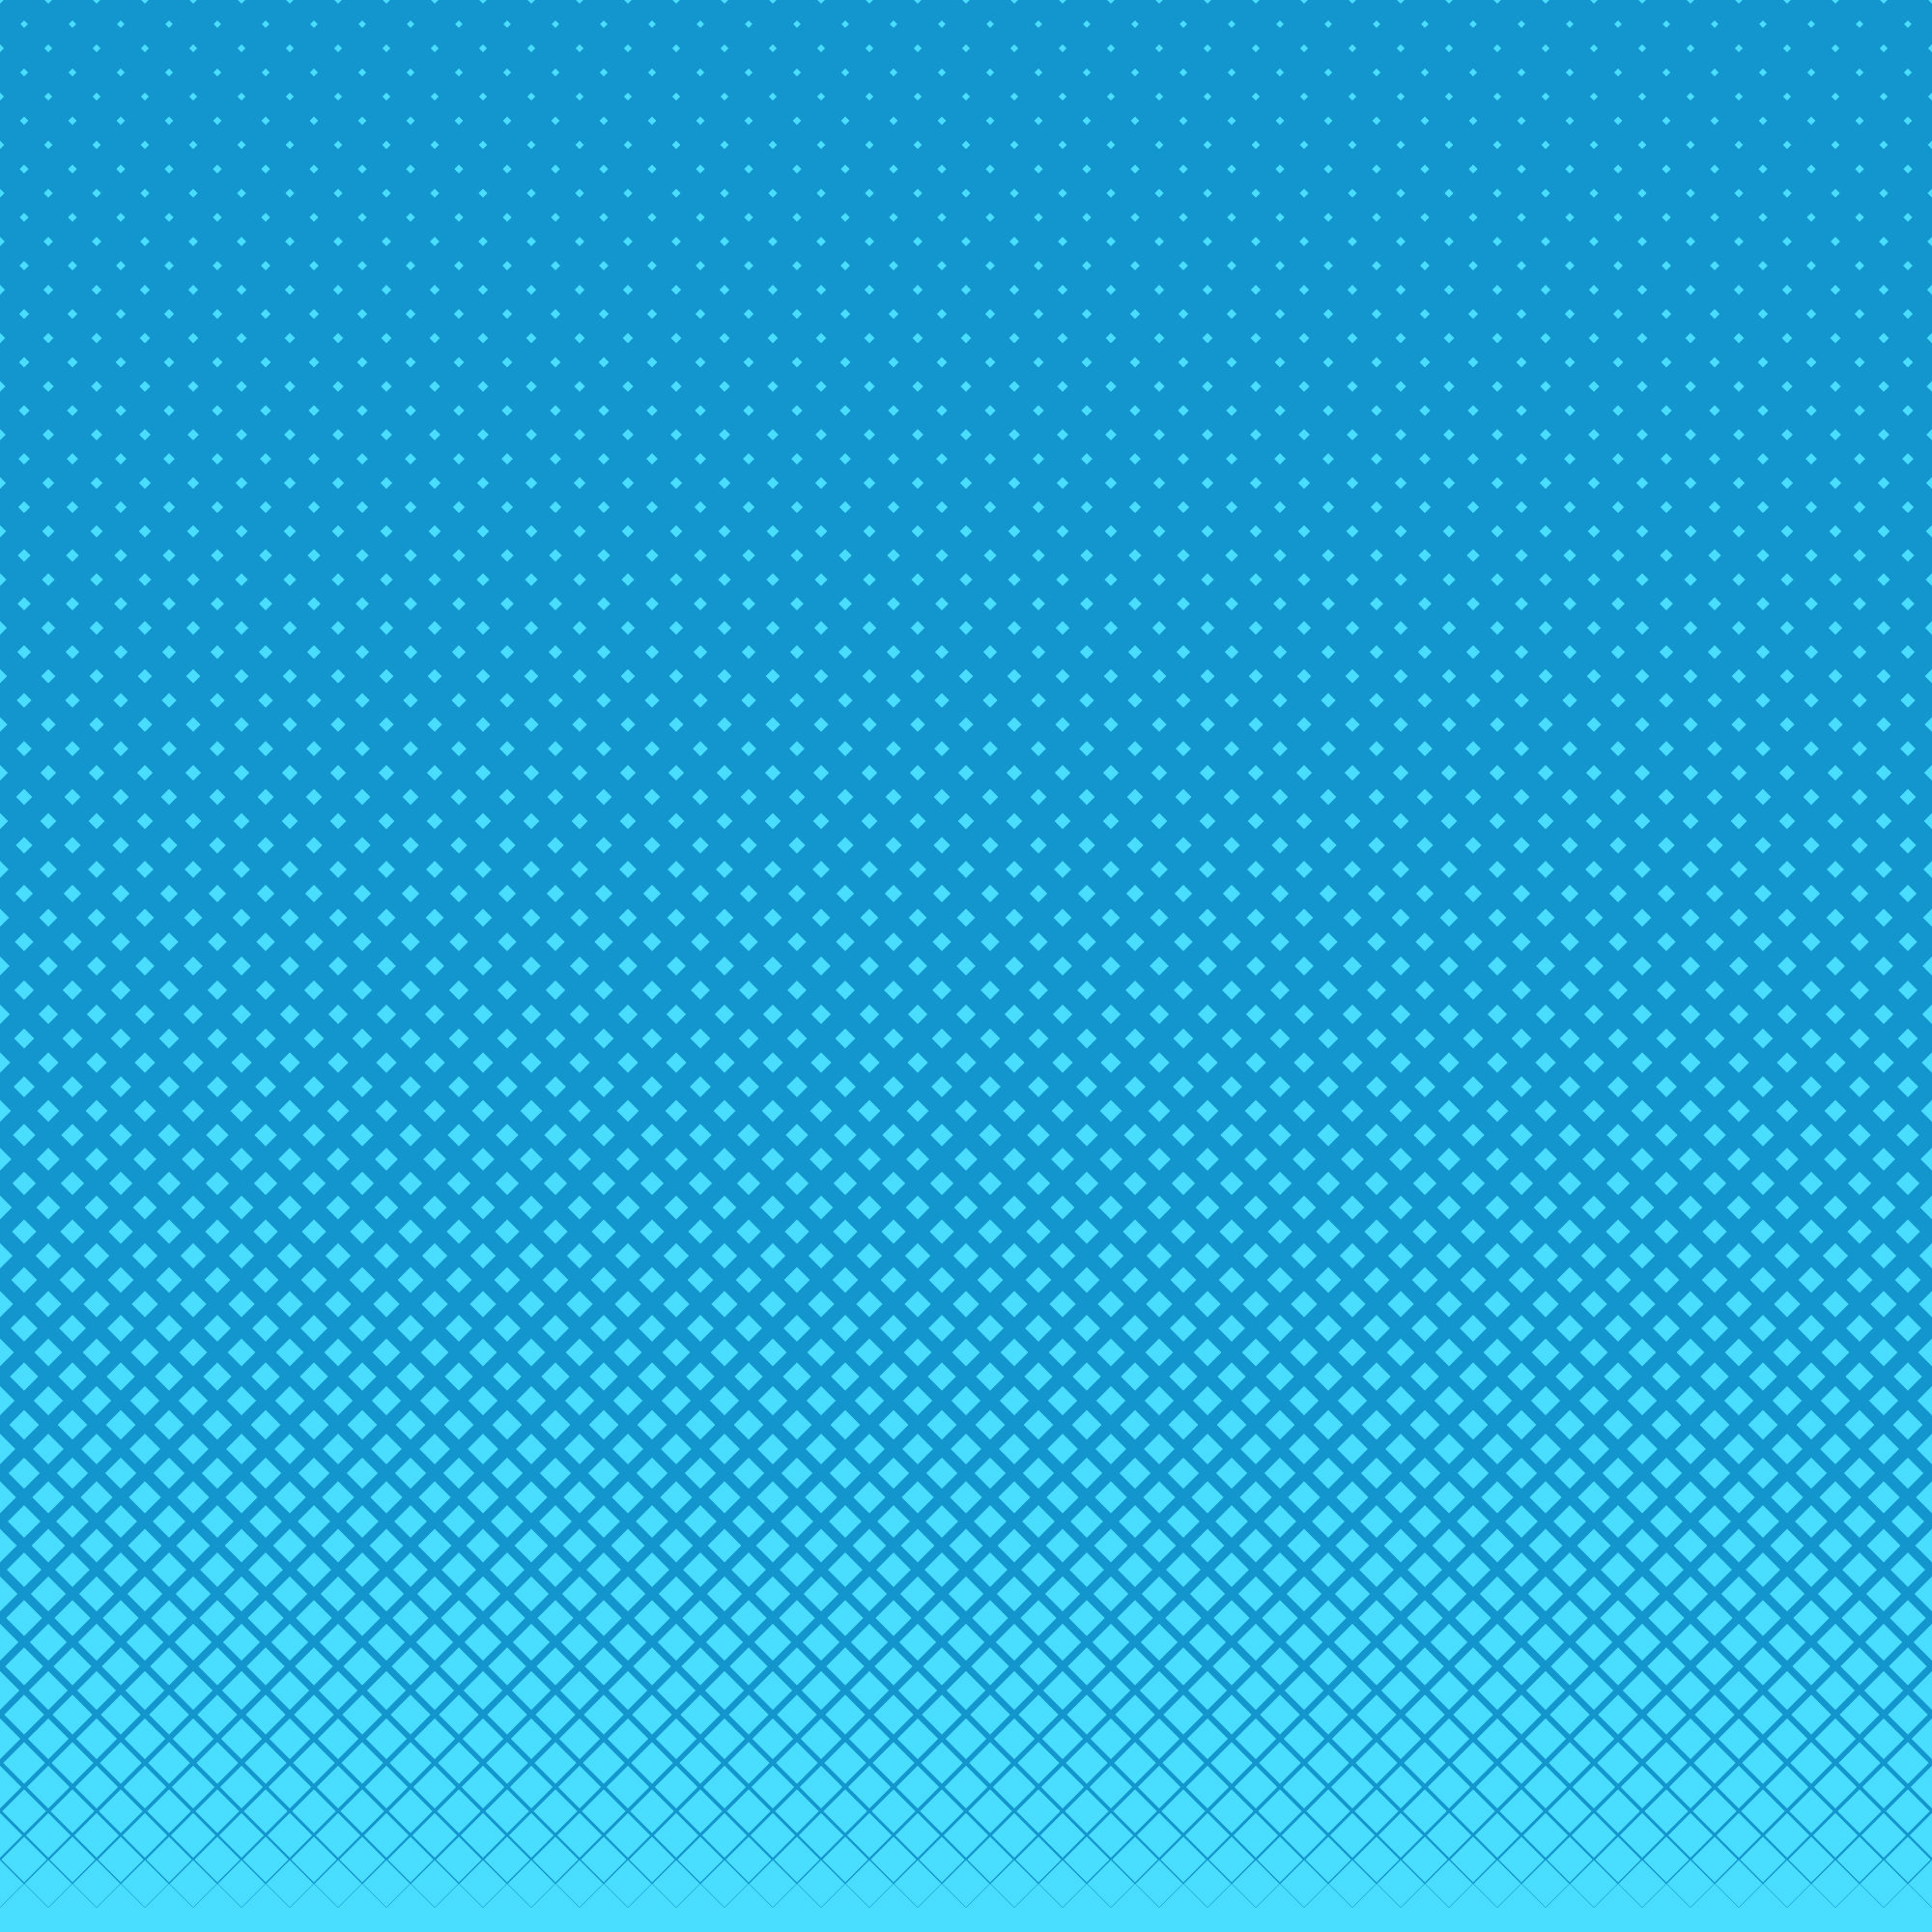 Blue halftone dots background